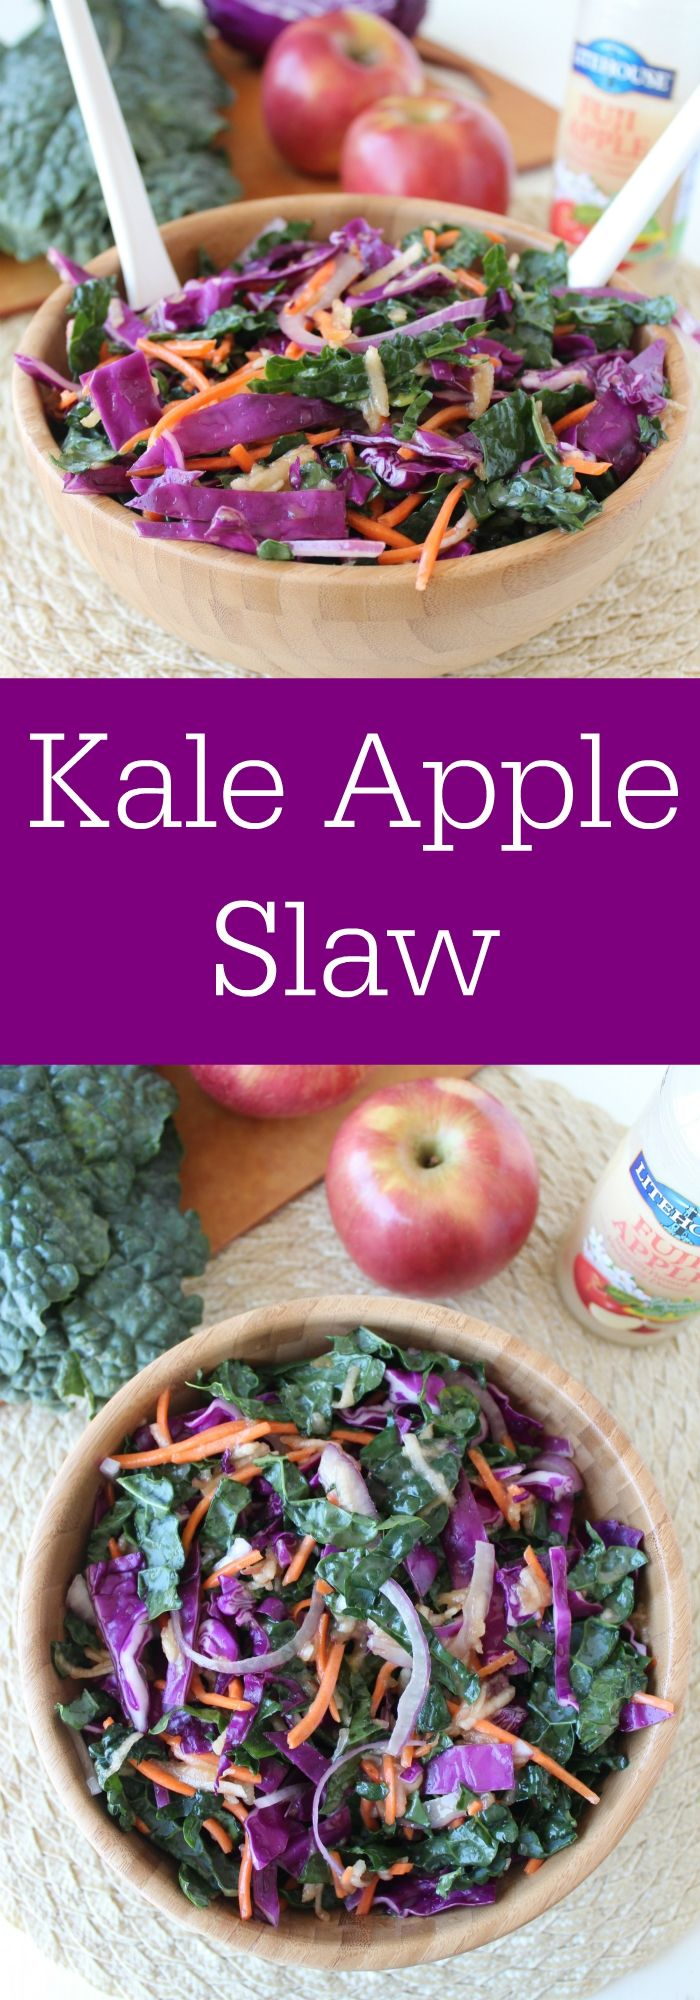 Vegan & Gluten Free Kale Apple Slaw Recipe - perfect as a side dish or on top of tacos or sandwiches!